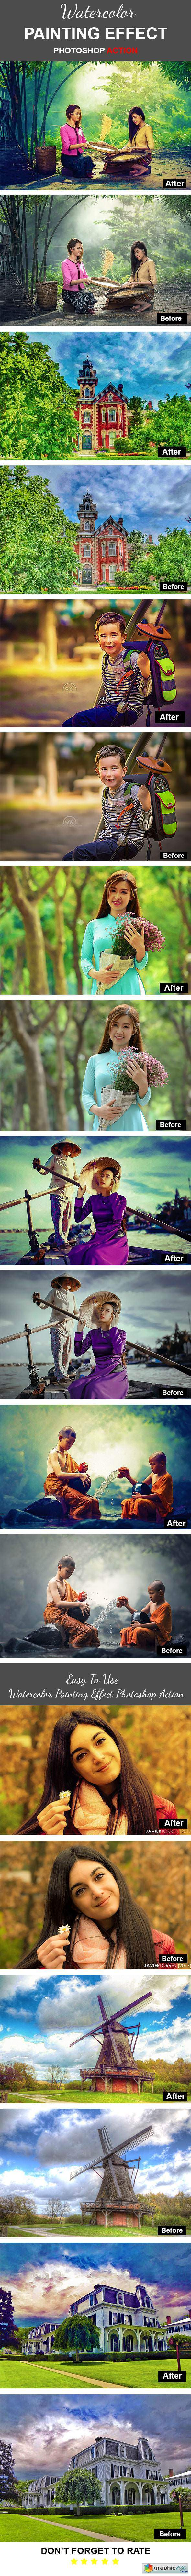 Watercolor Painting Effect Photoshop Action